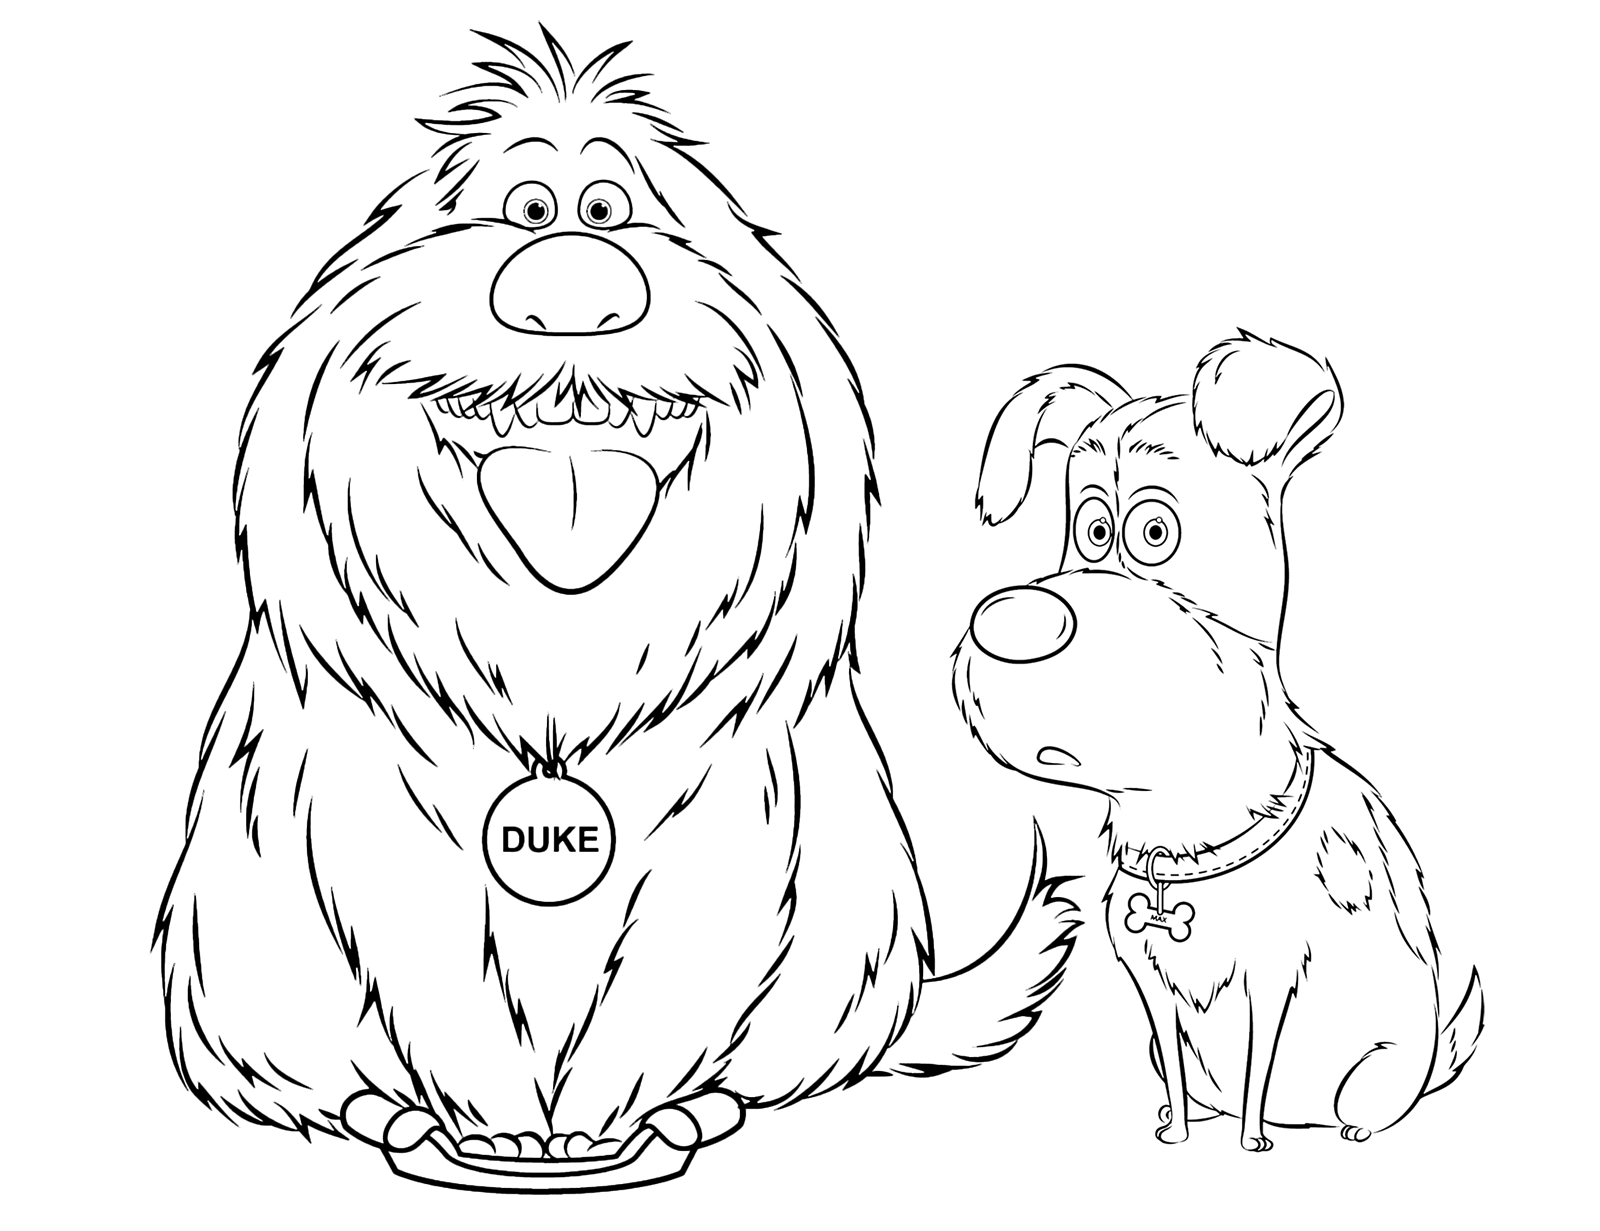 Secret Life Of Pets Coloring Pages - the Secret Life Of Pets Duke and Max the Two Katie Dogs